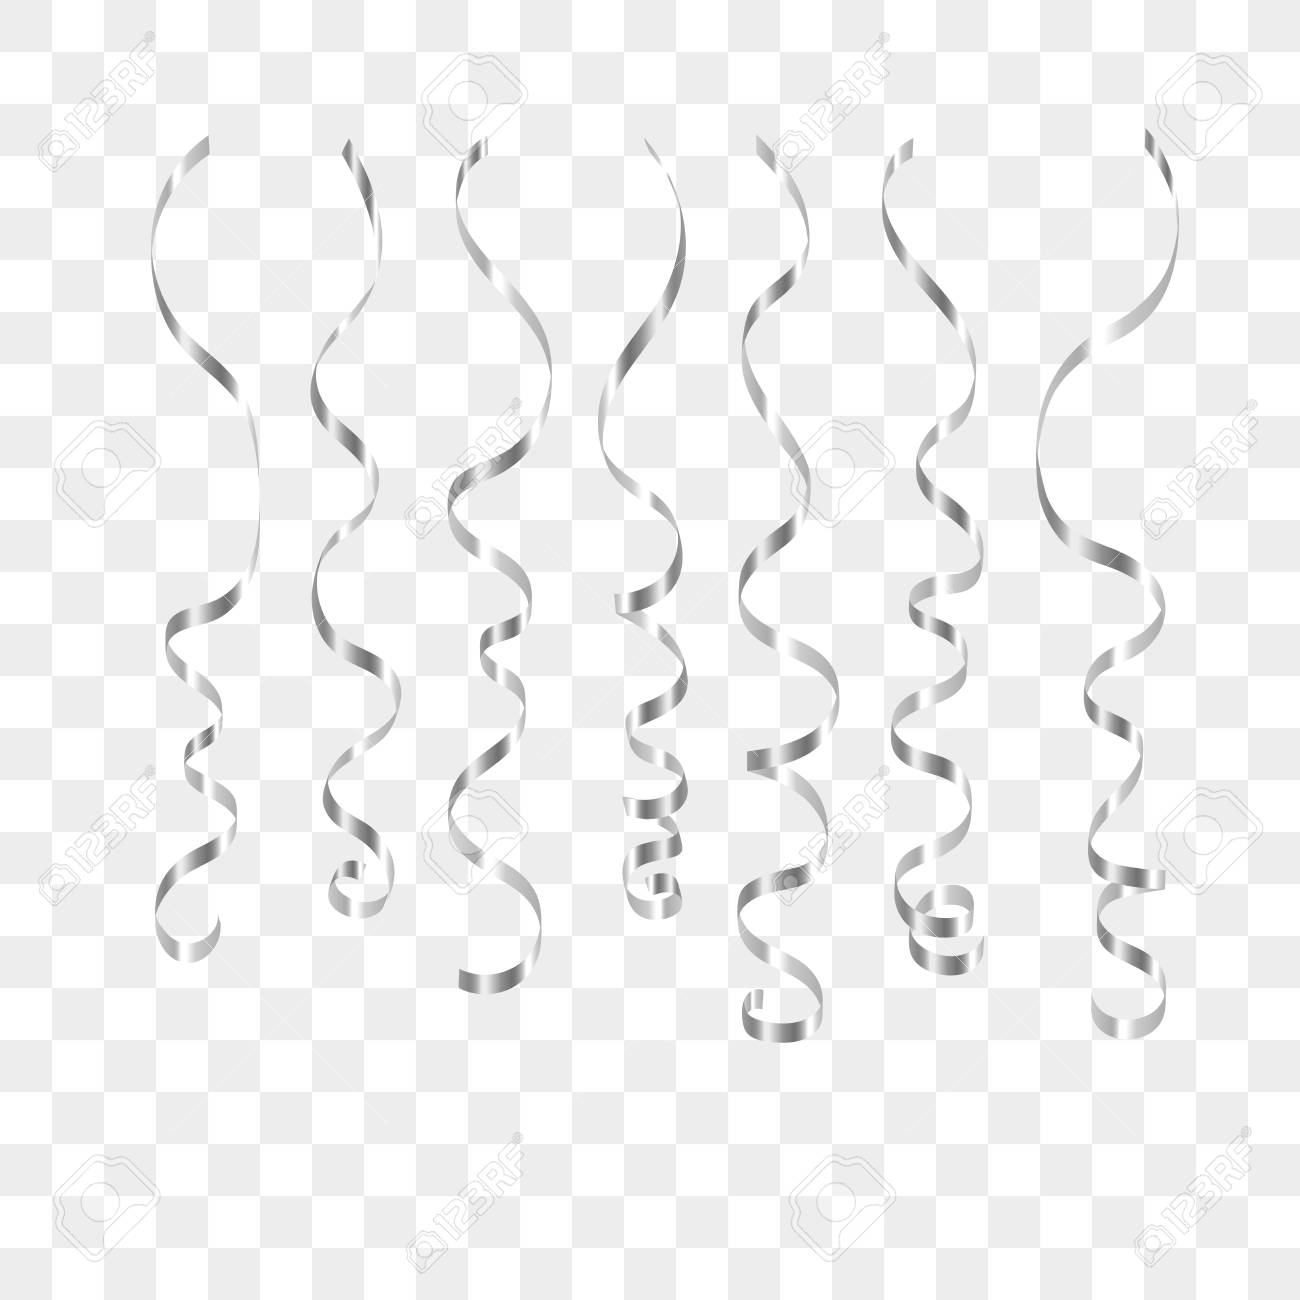 Streamers clipart silver. Cliparts making the web